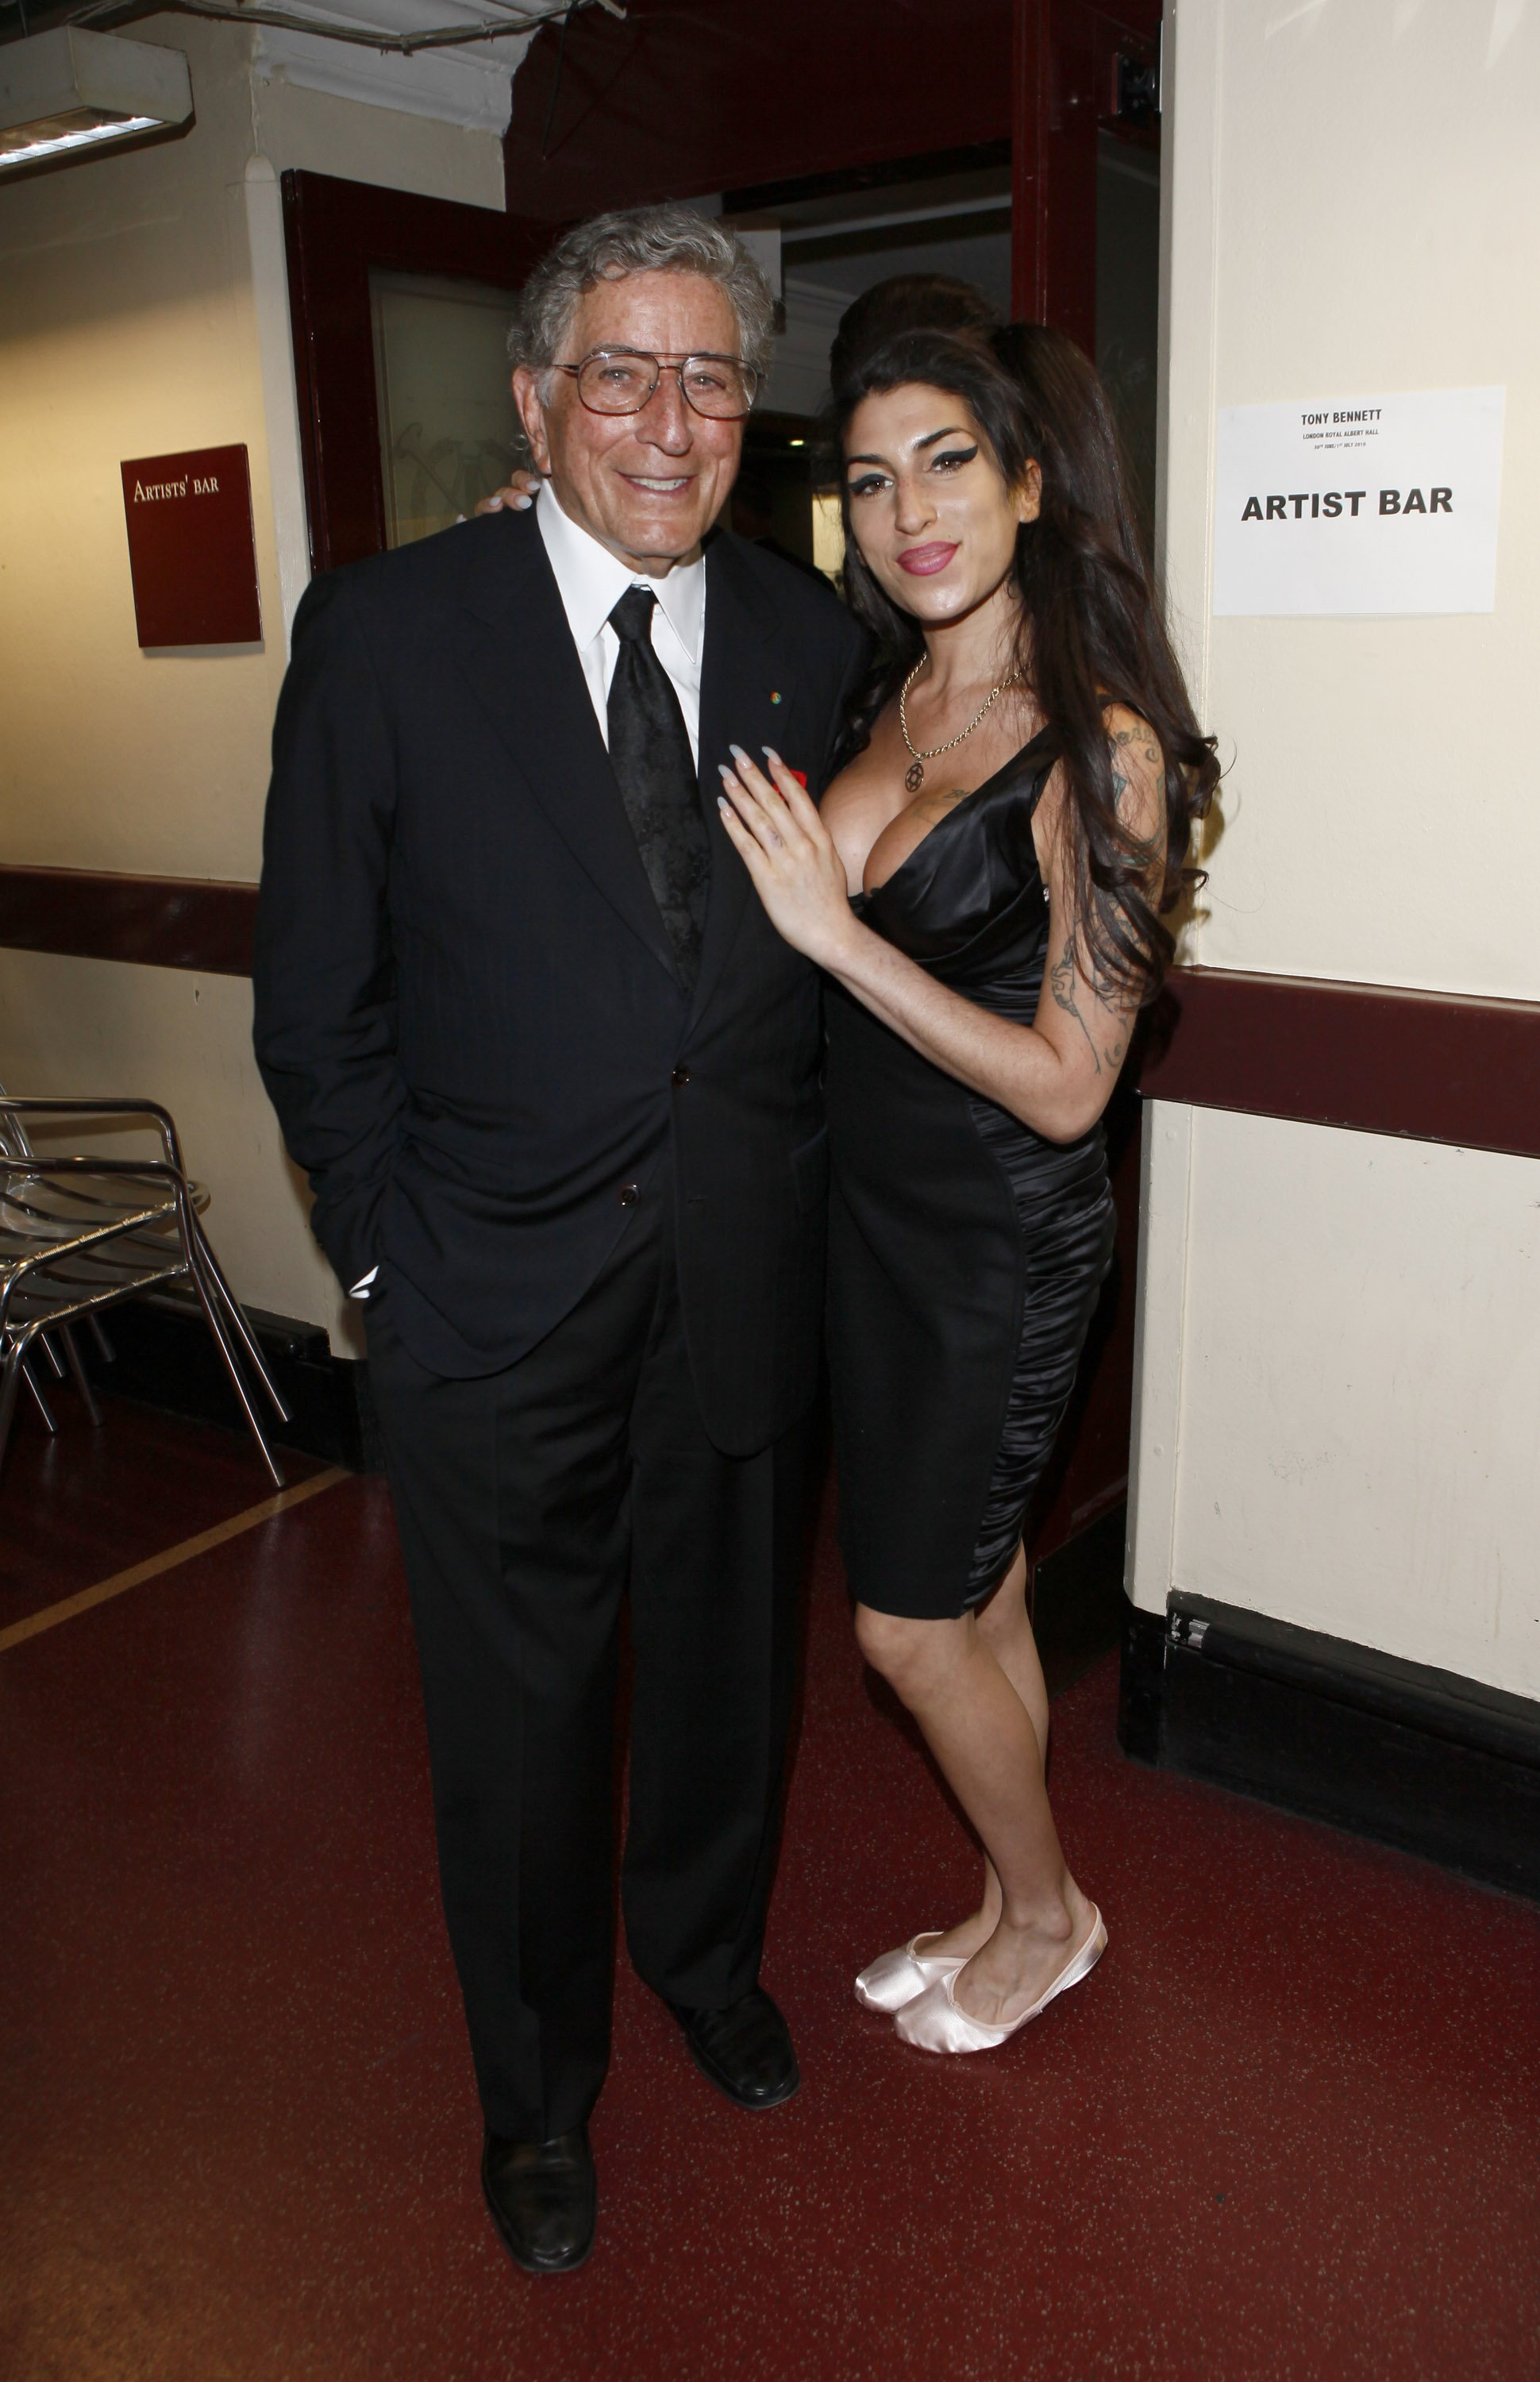 Tony Bennett and Amy Winehouse attend the after show party for Tony Bennett's concert at Royal Albert Hall on July 1, 2010 | Getty Images